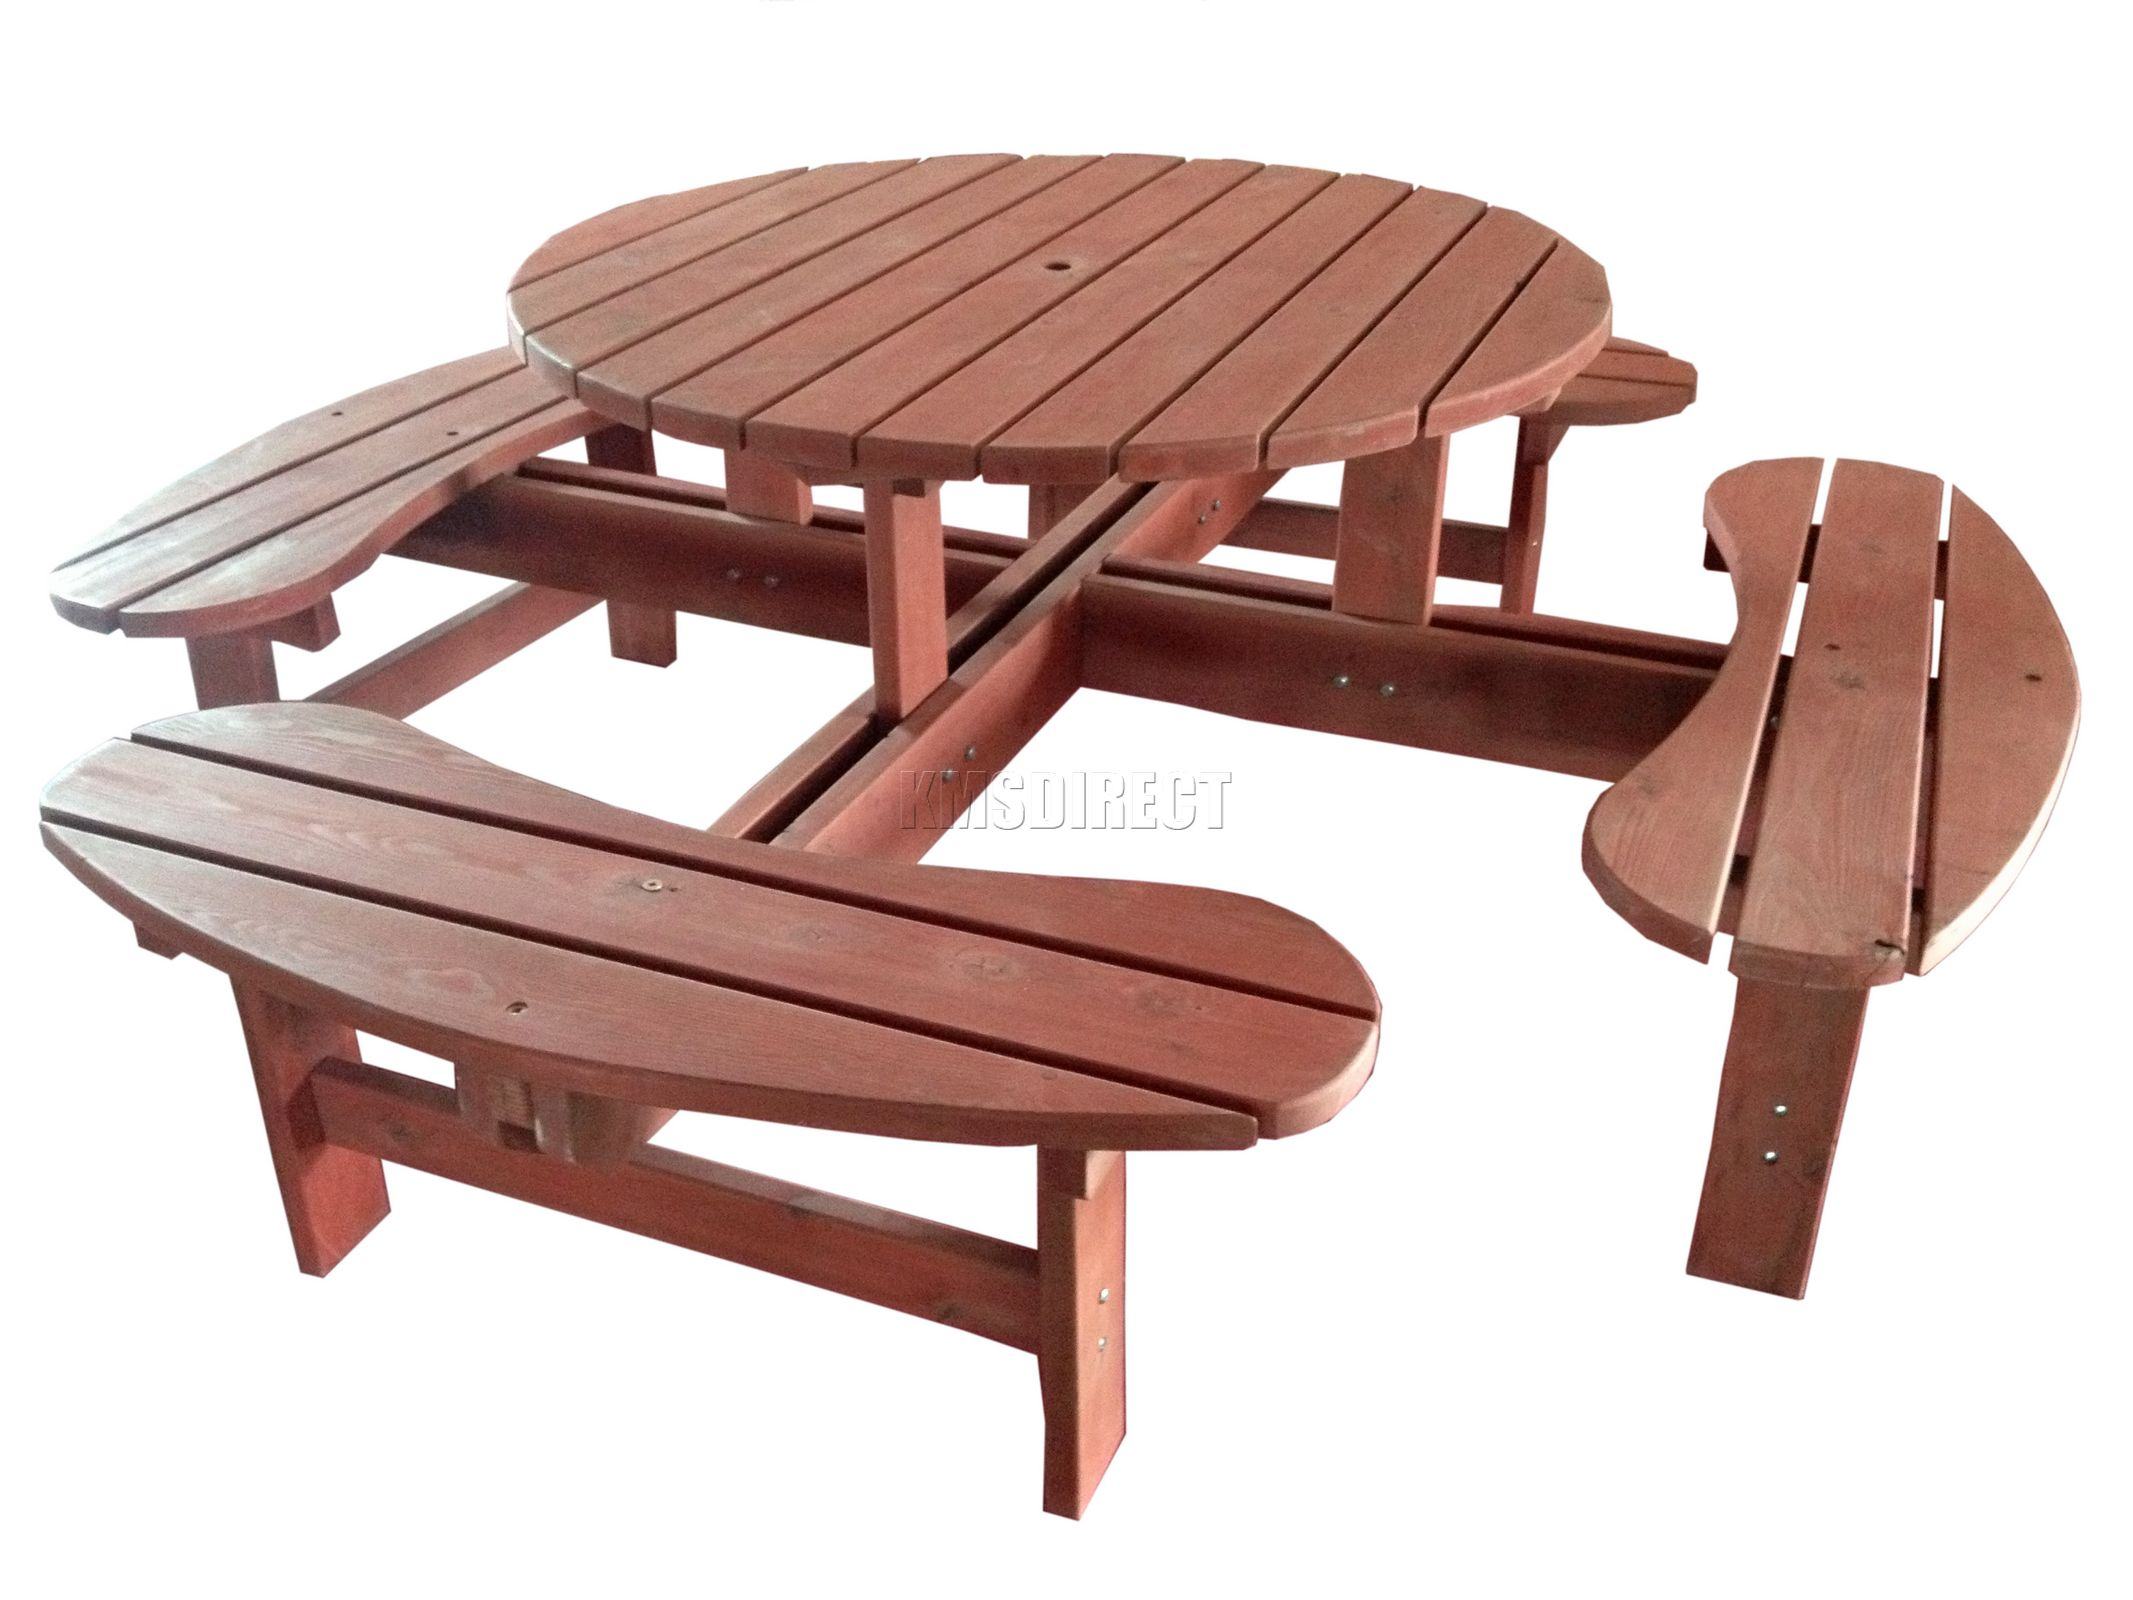 Garden Patio 8 Seat Seater Wooden Pub Bench Round Picnic Table Furniture Brown